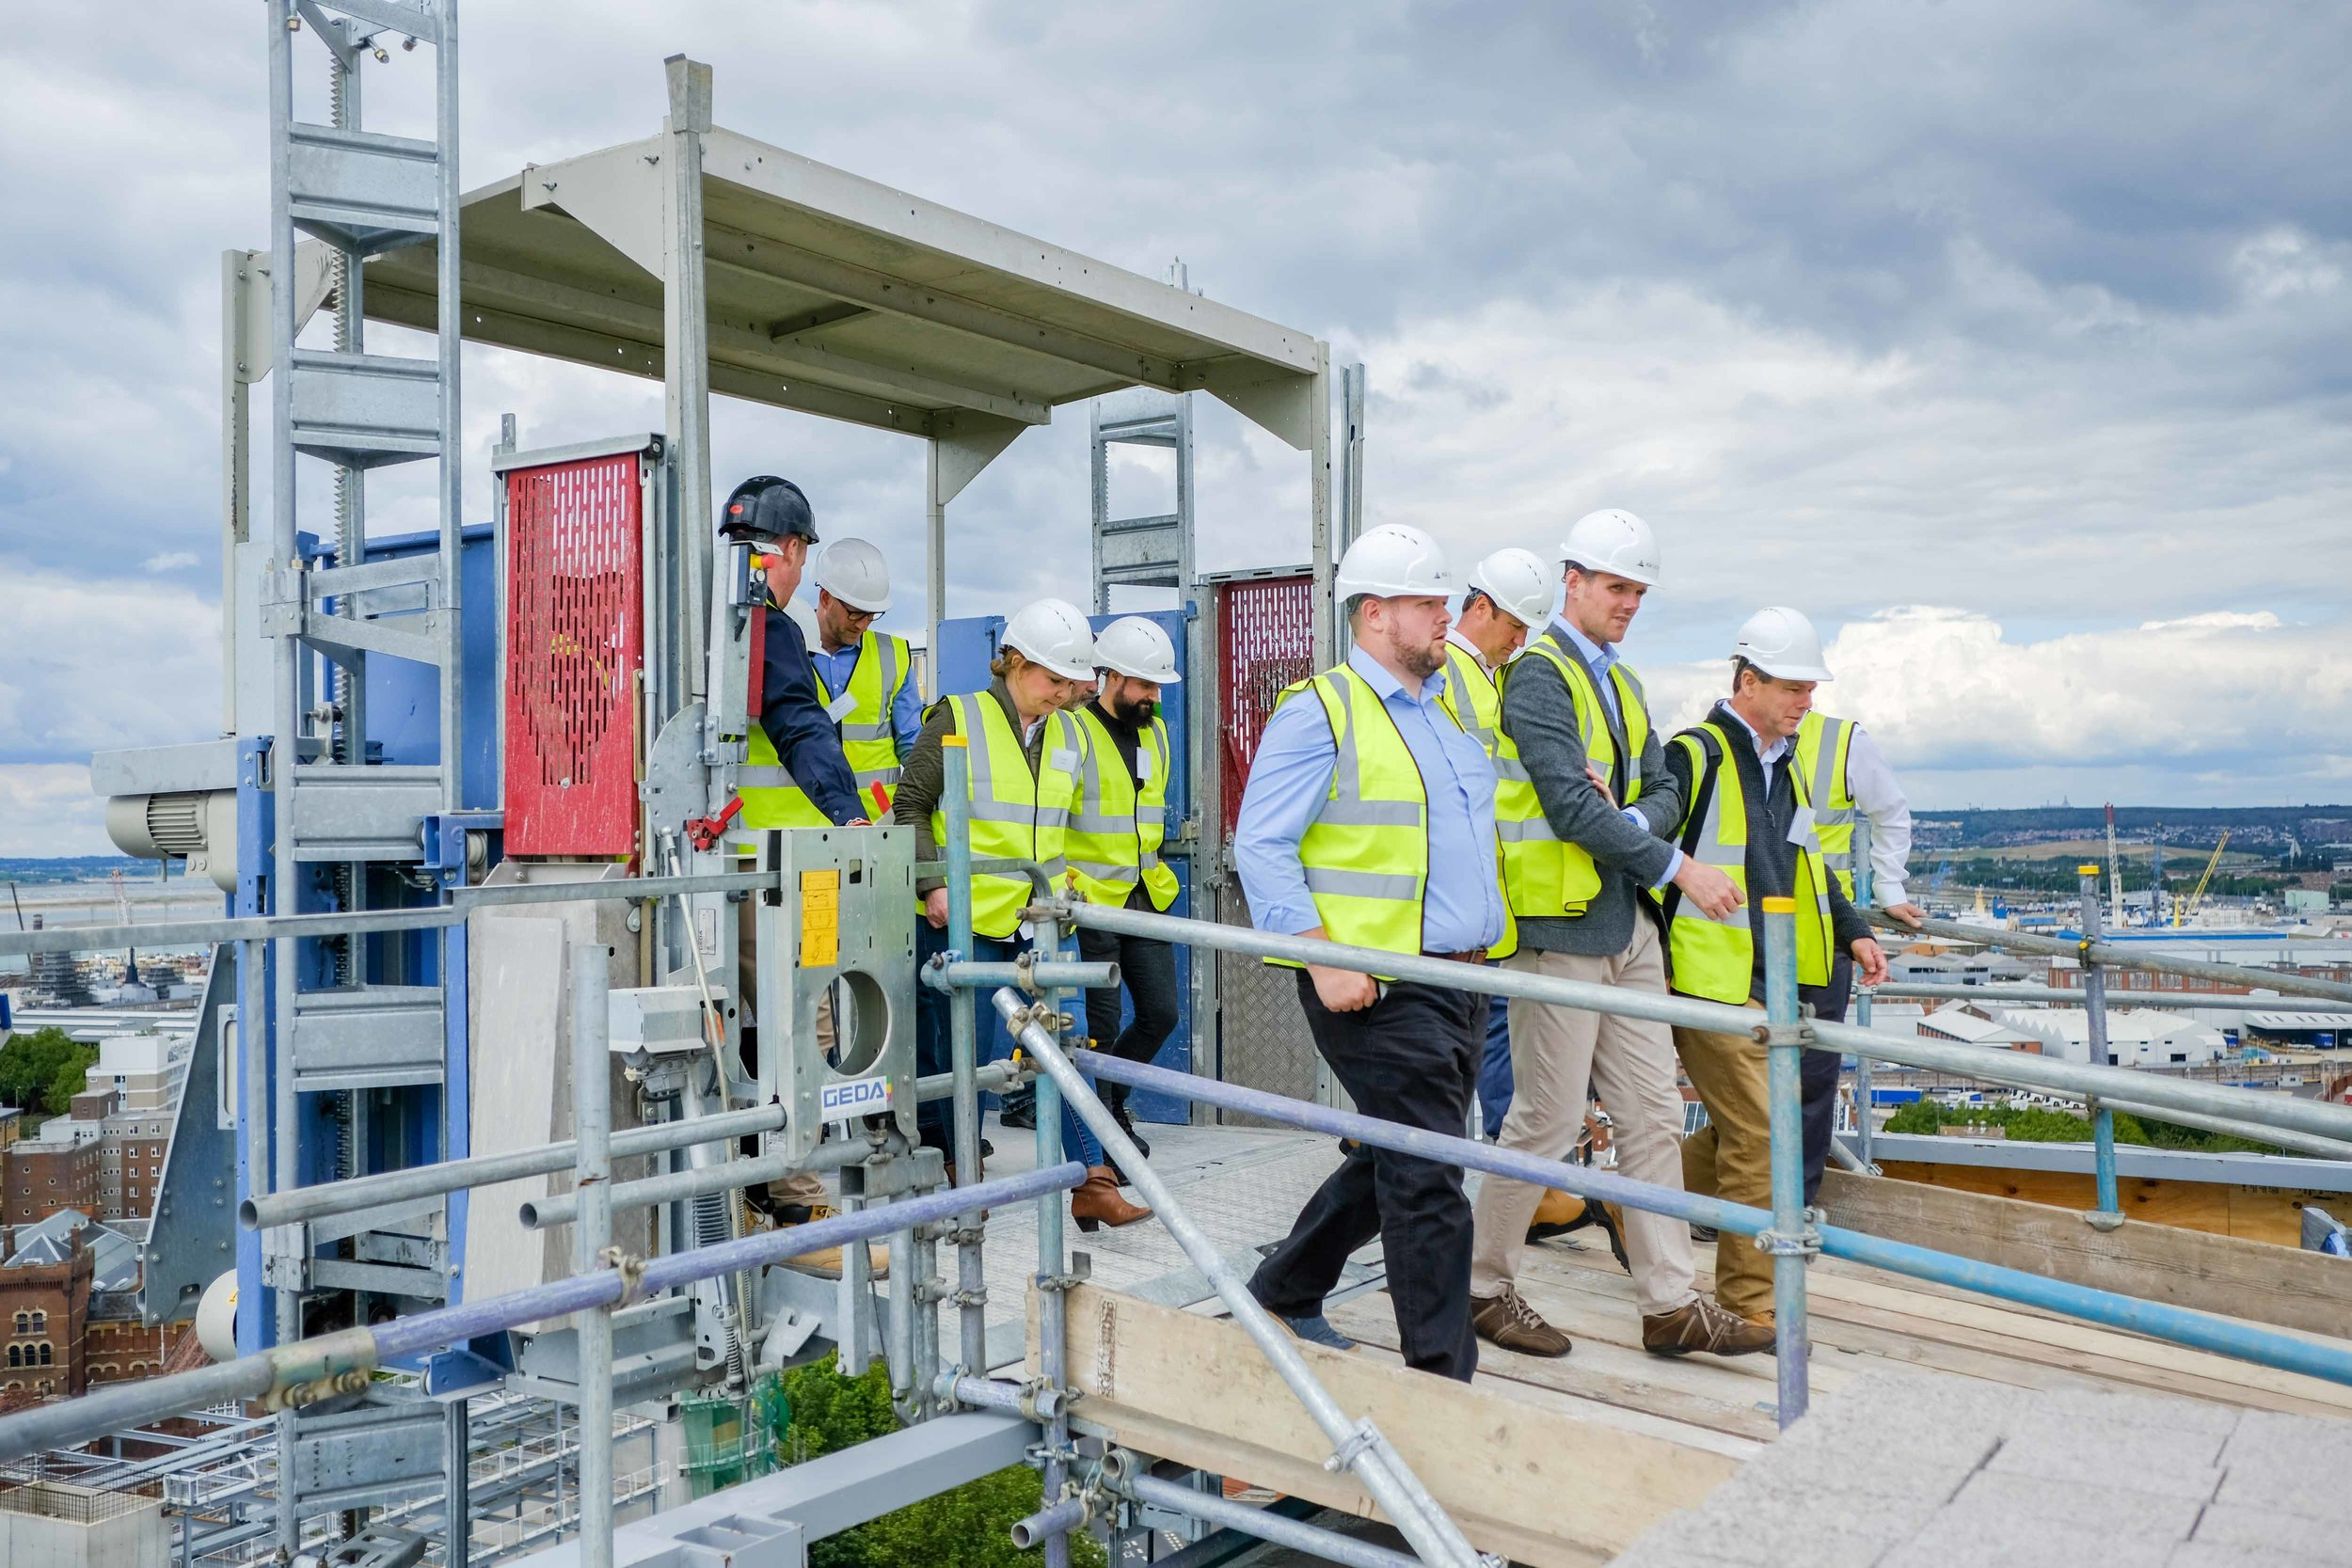 Stanhope House Topping Out 28.05.19 - Solent Sky Services--35.JPG